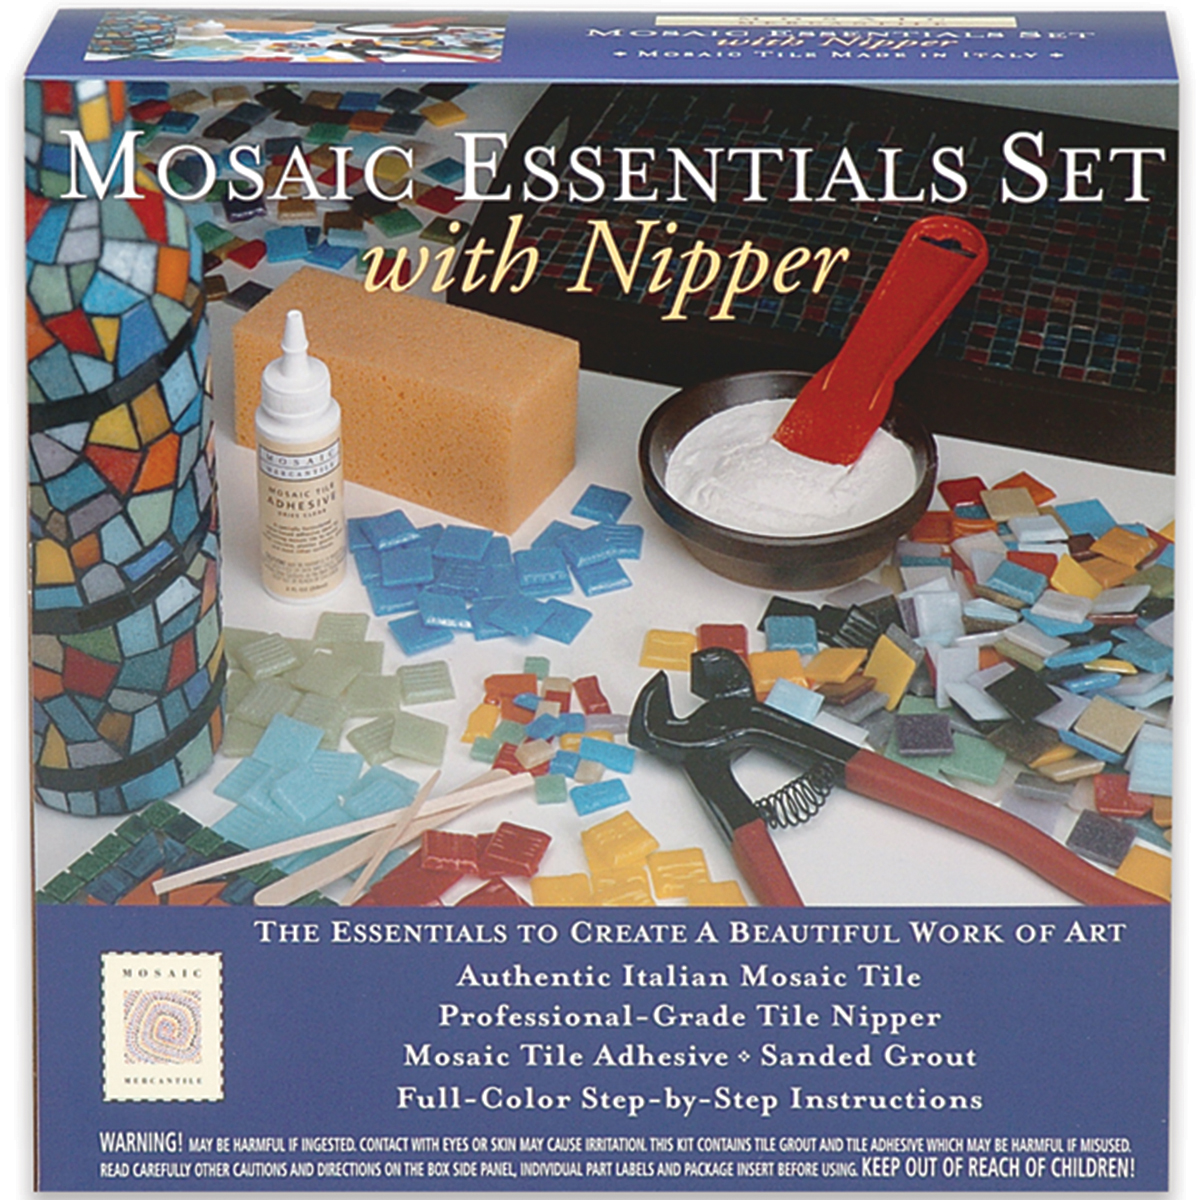 Mosaic Essential Set with Nipper